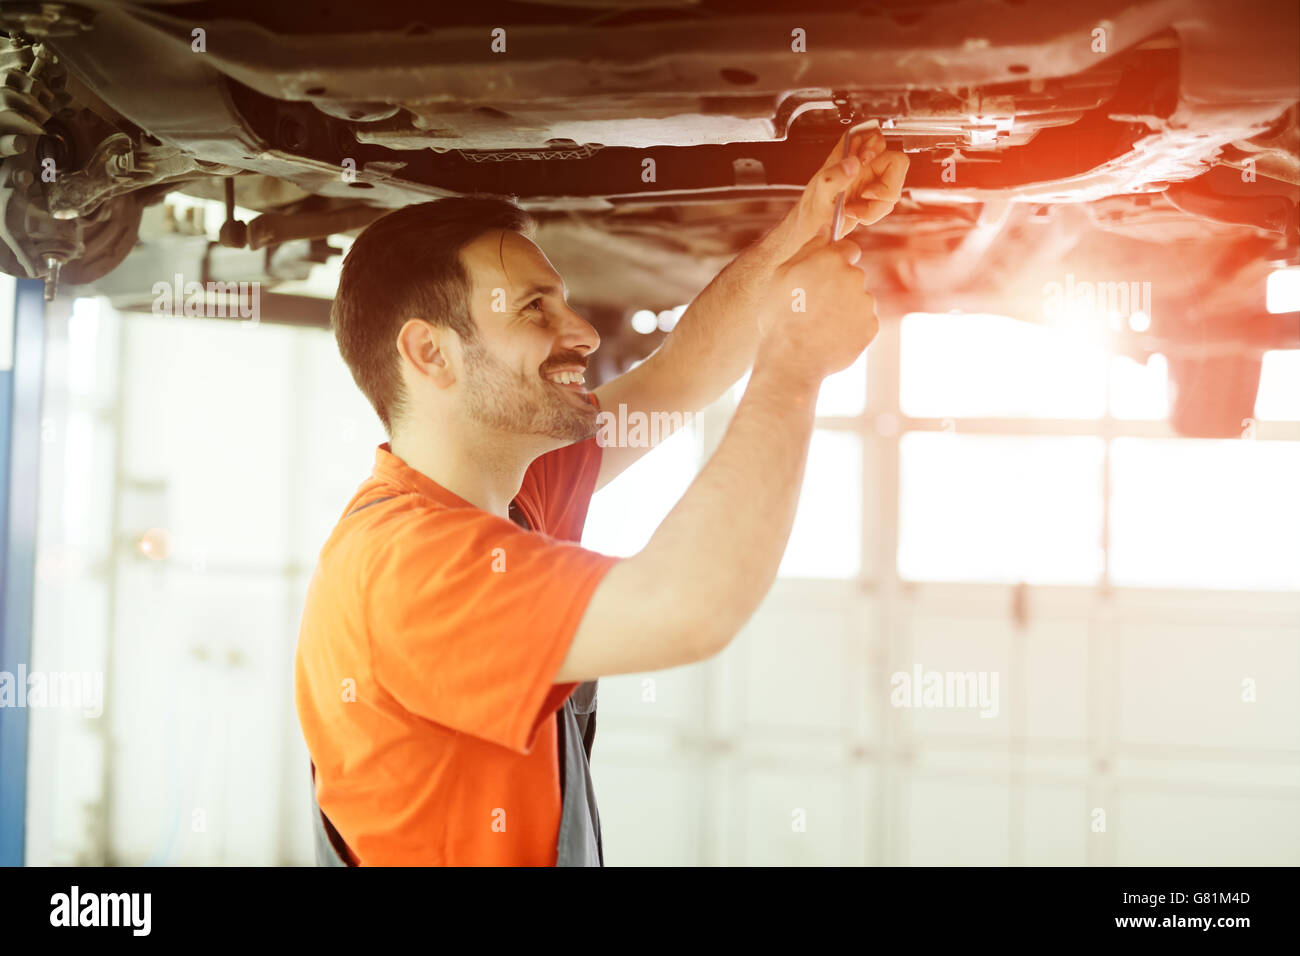 Car mechanic fixing a car in garage at dealership - Stock Image